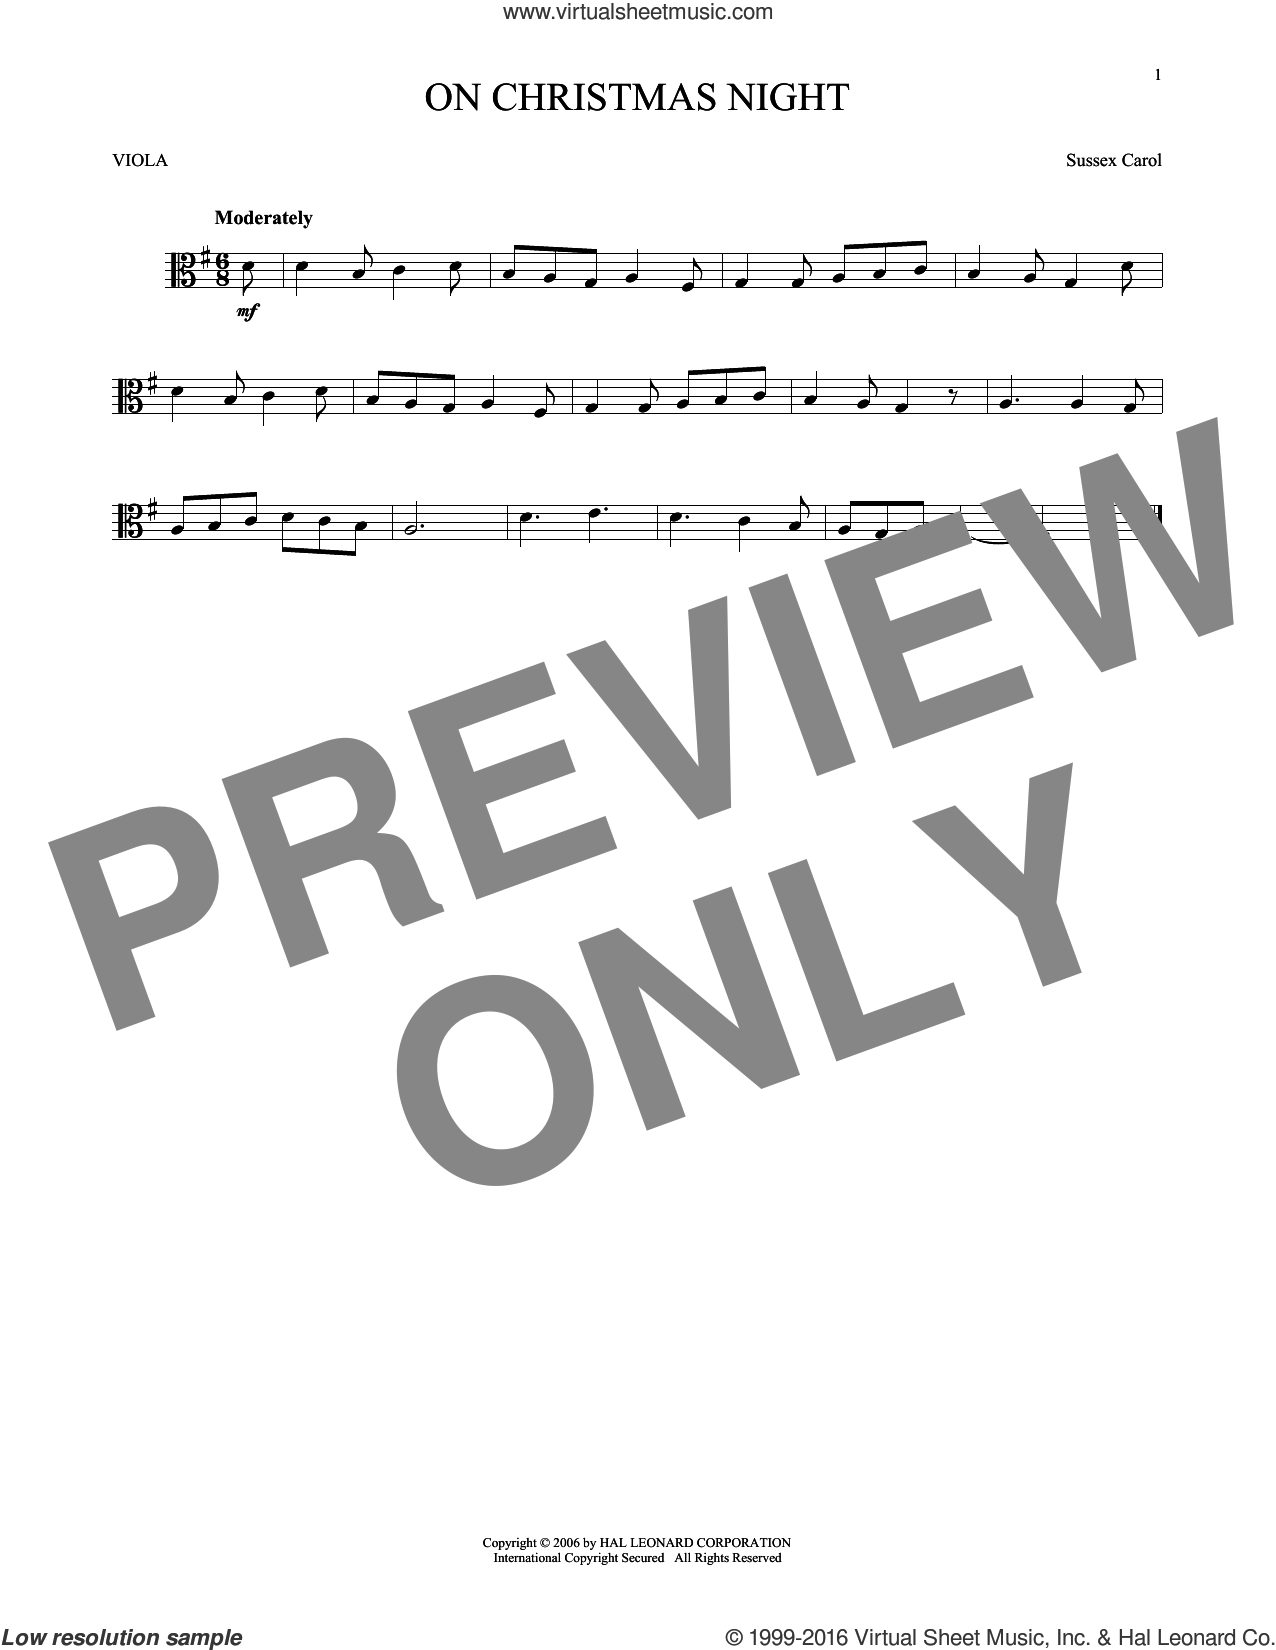 On Christmas Night sheet music for viola solo, intermediate skill level